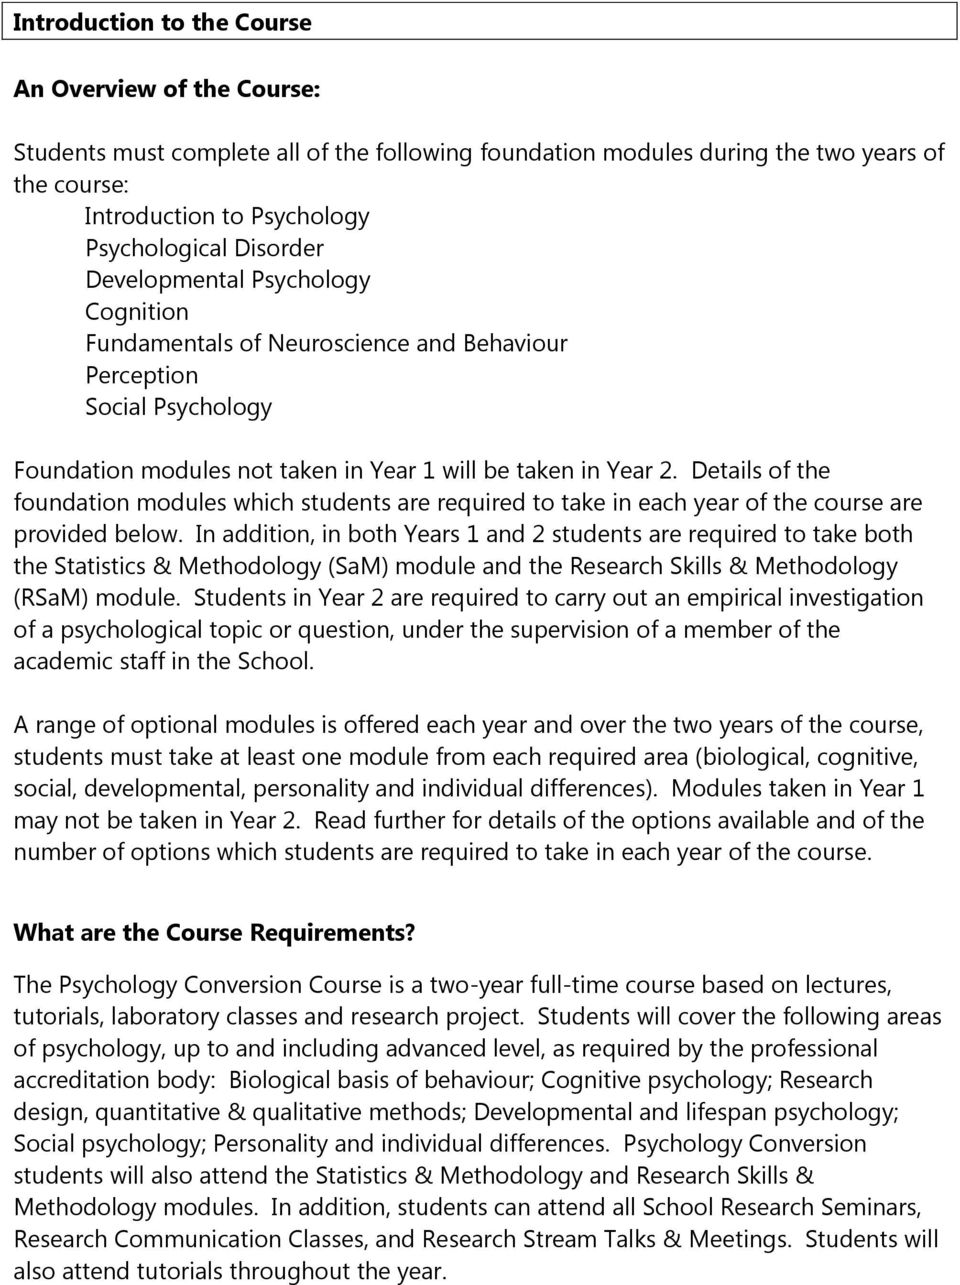 Details of the foundation modules which students are required to take in each year of the course are provided below.